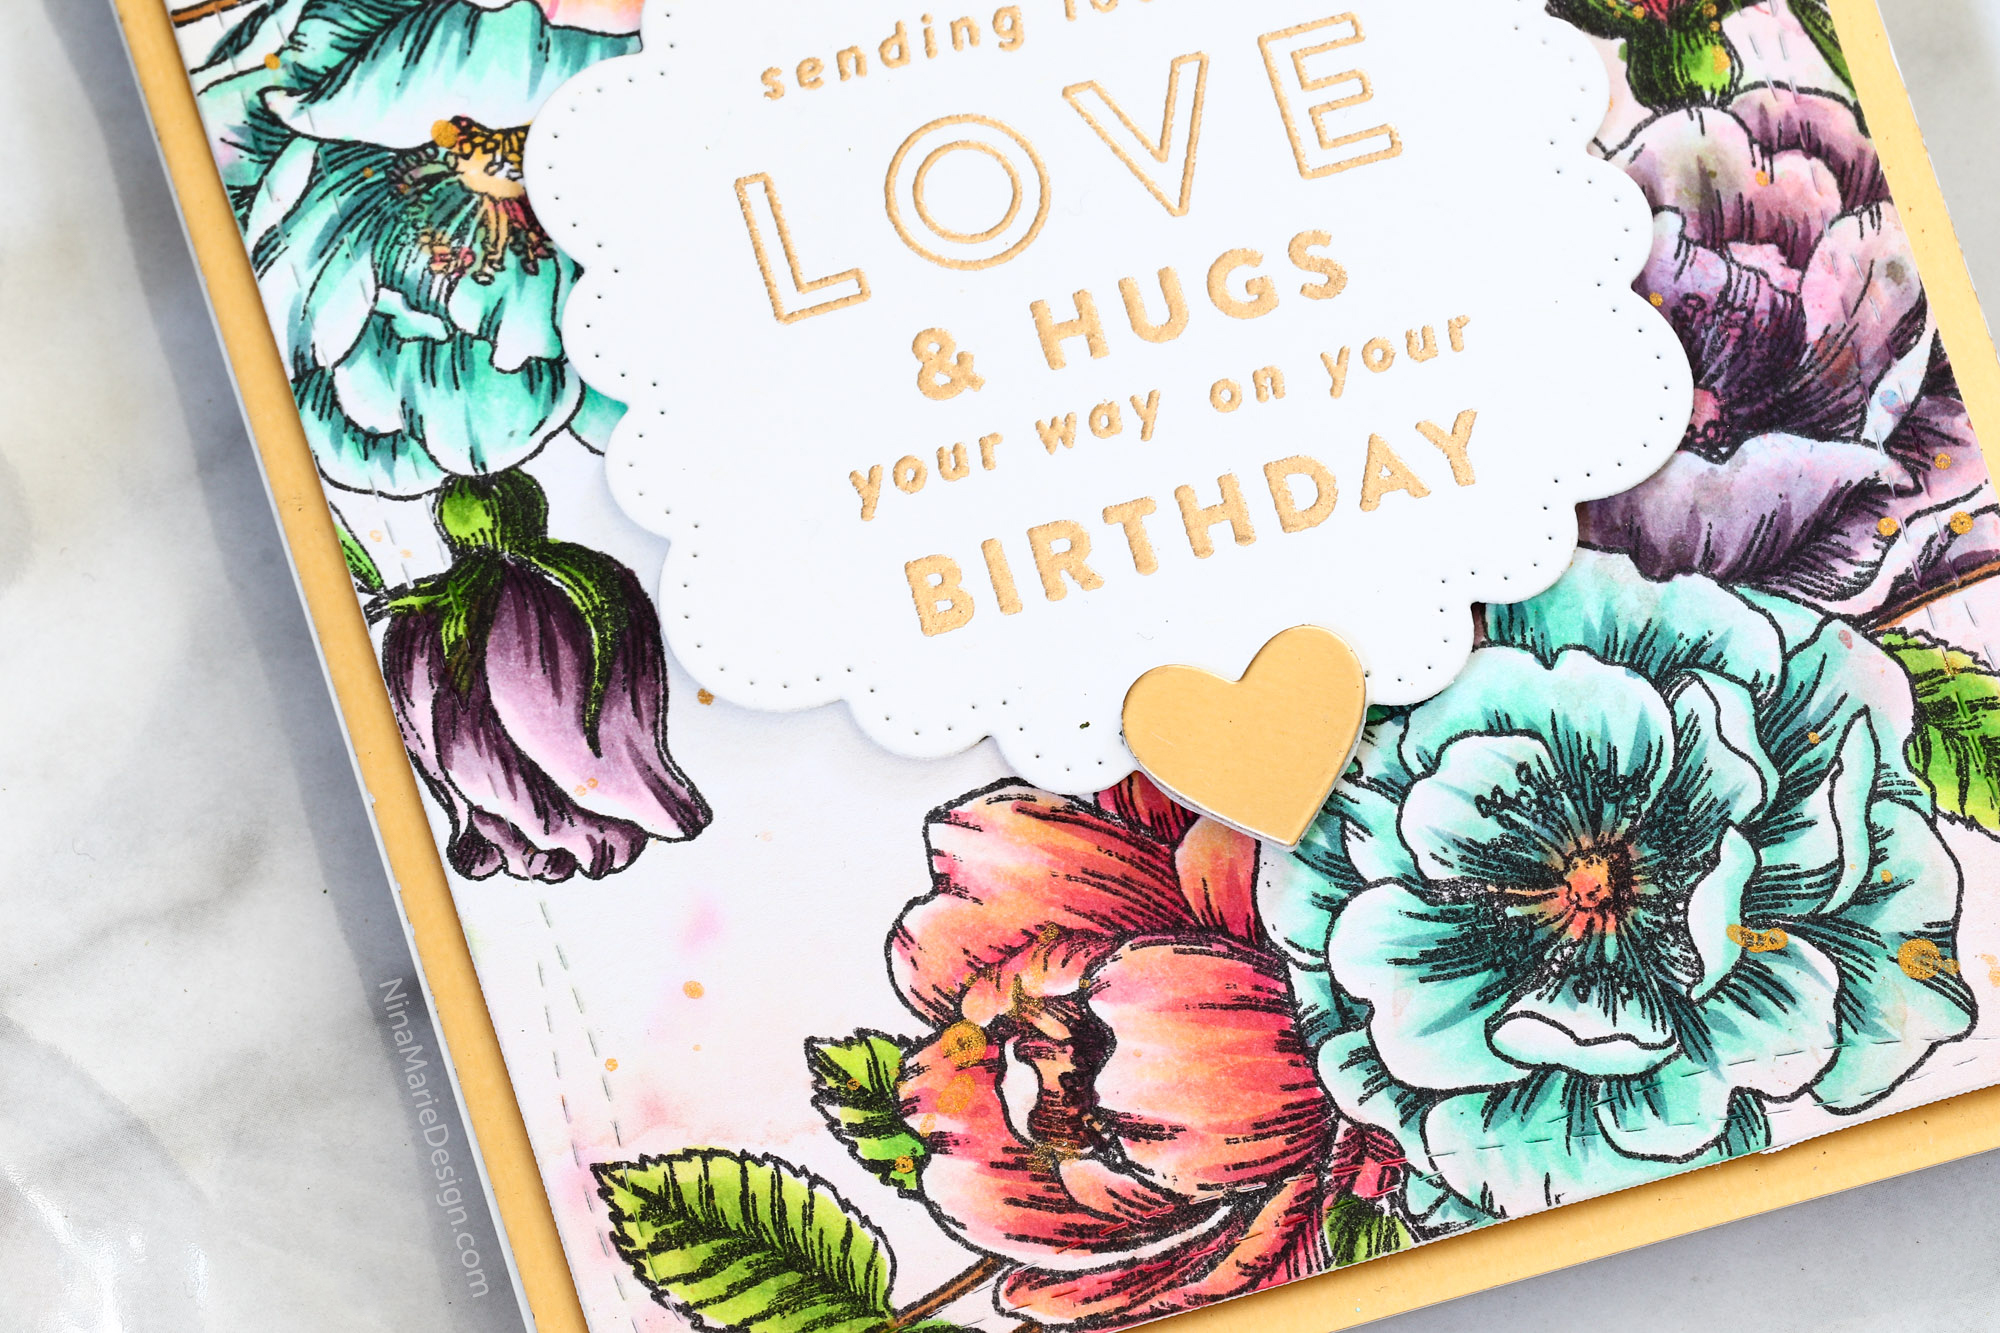 Coloring on Patterned Paper + Simon's June 2018 Card Kit